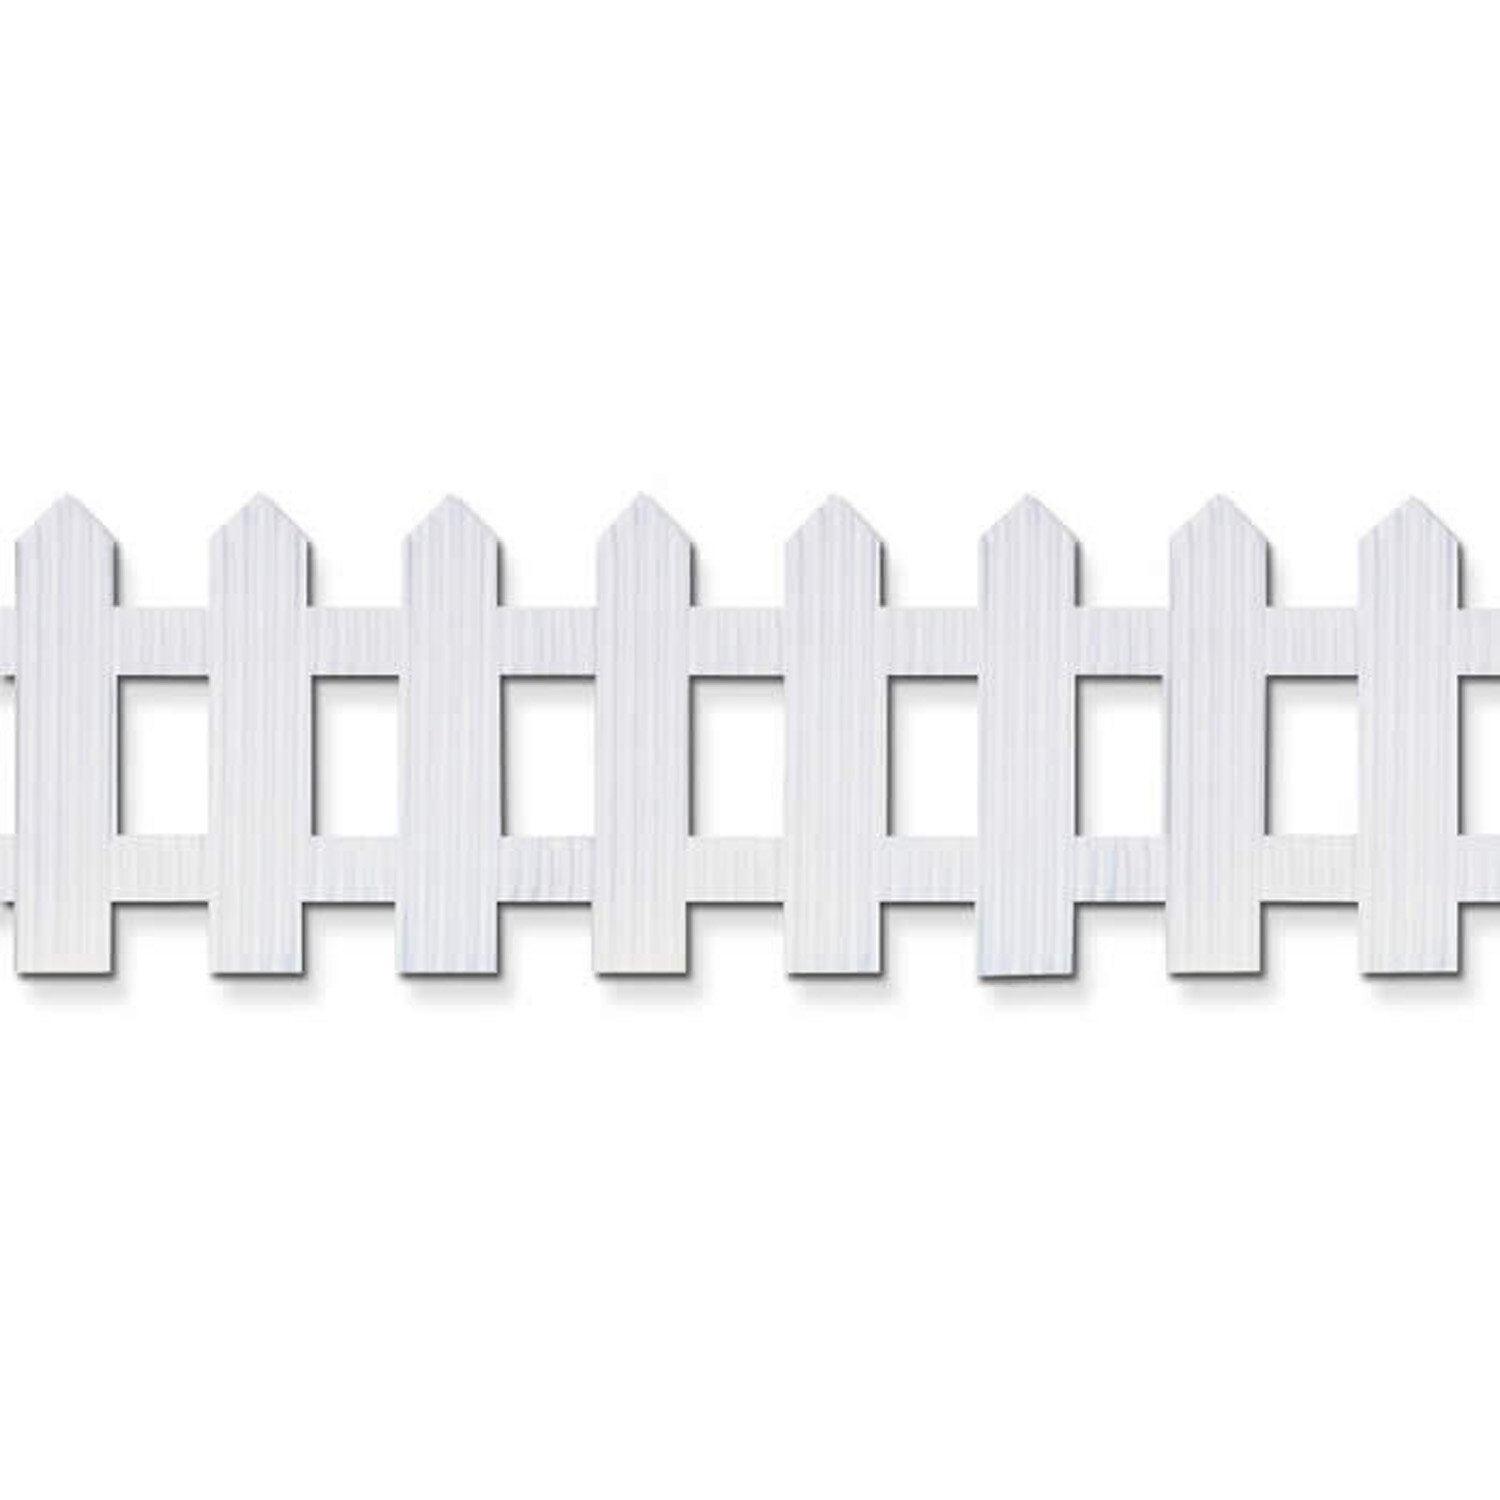 Pacon Creative Products Picket Fence Roll Bulletin Board Cut Out Wayfair